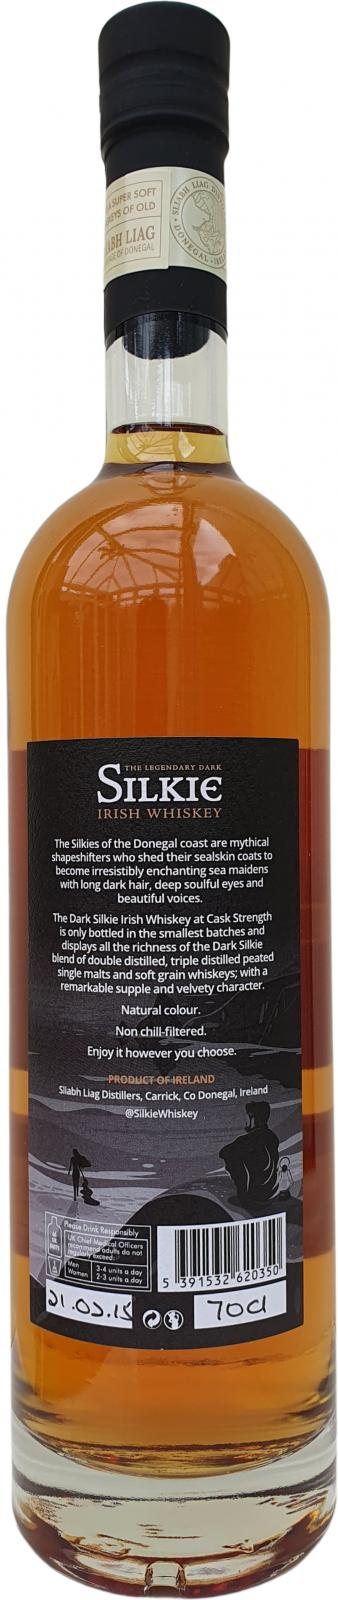 Silkie The Legendary Dark SLD